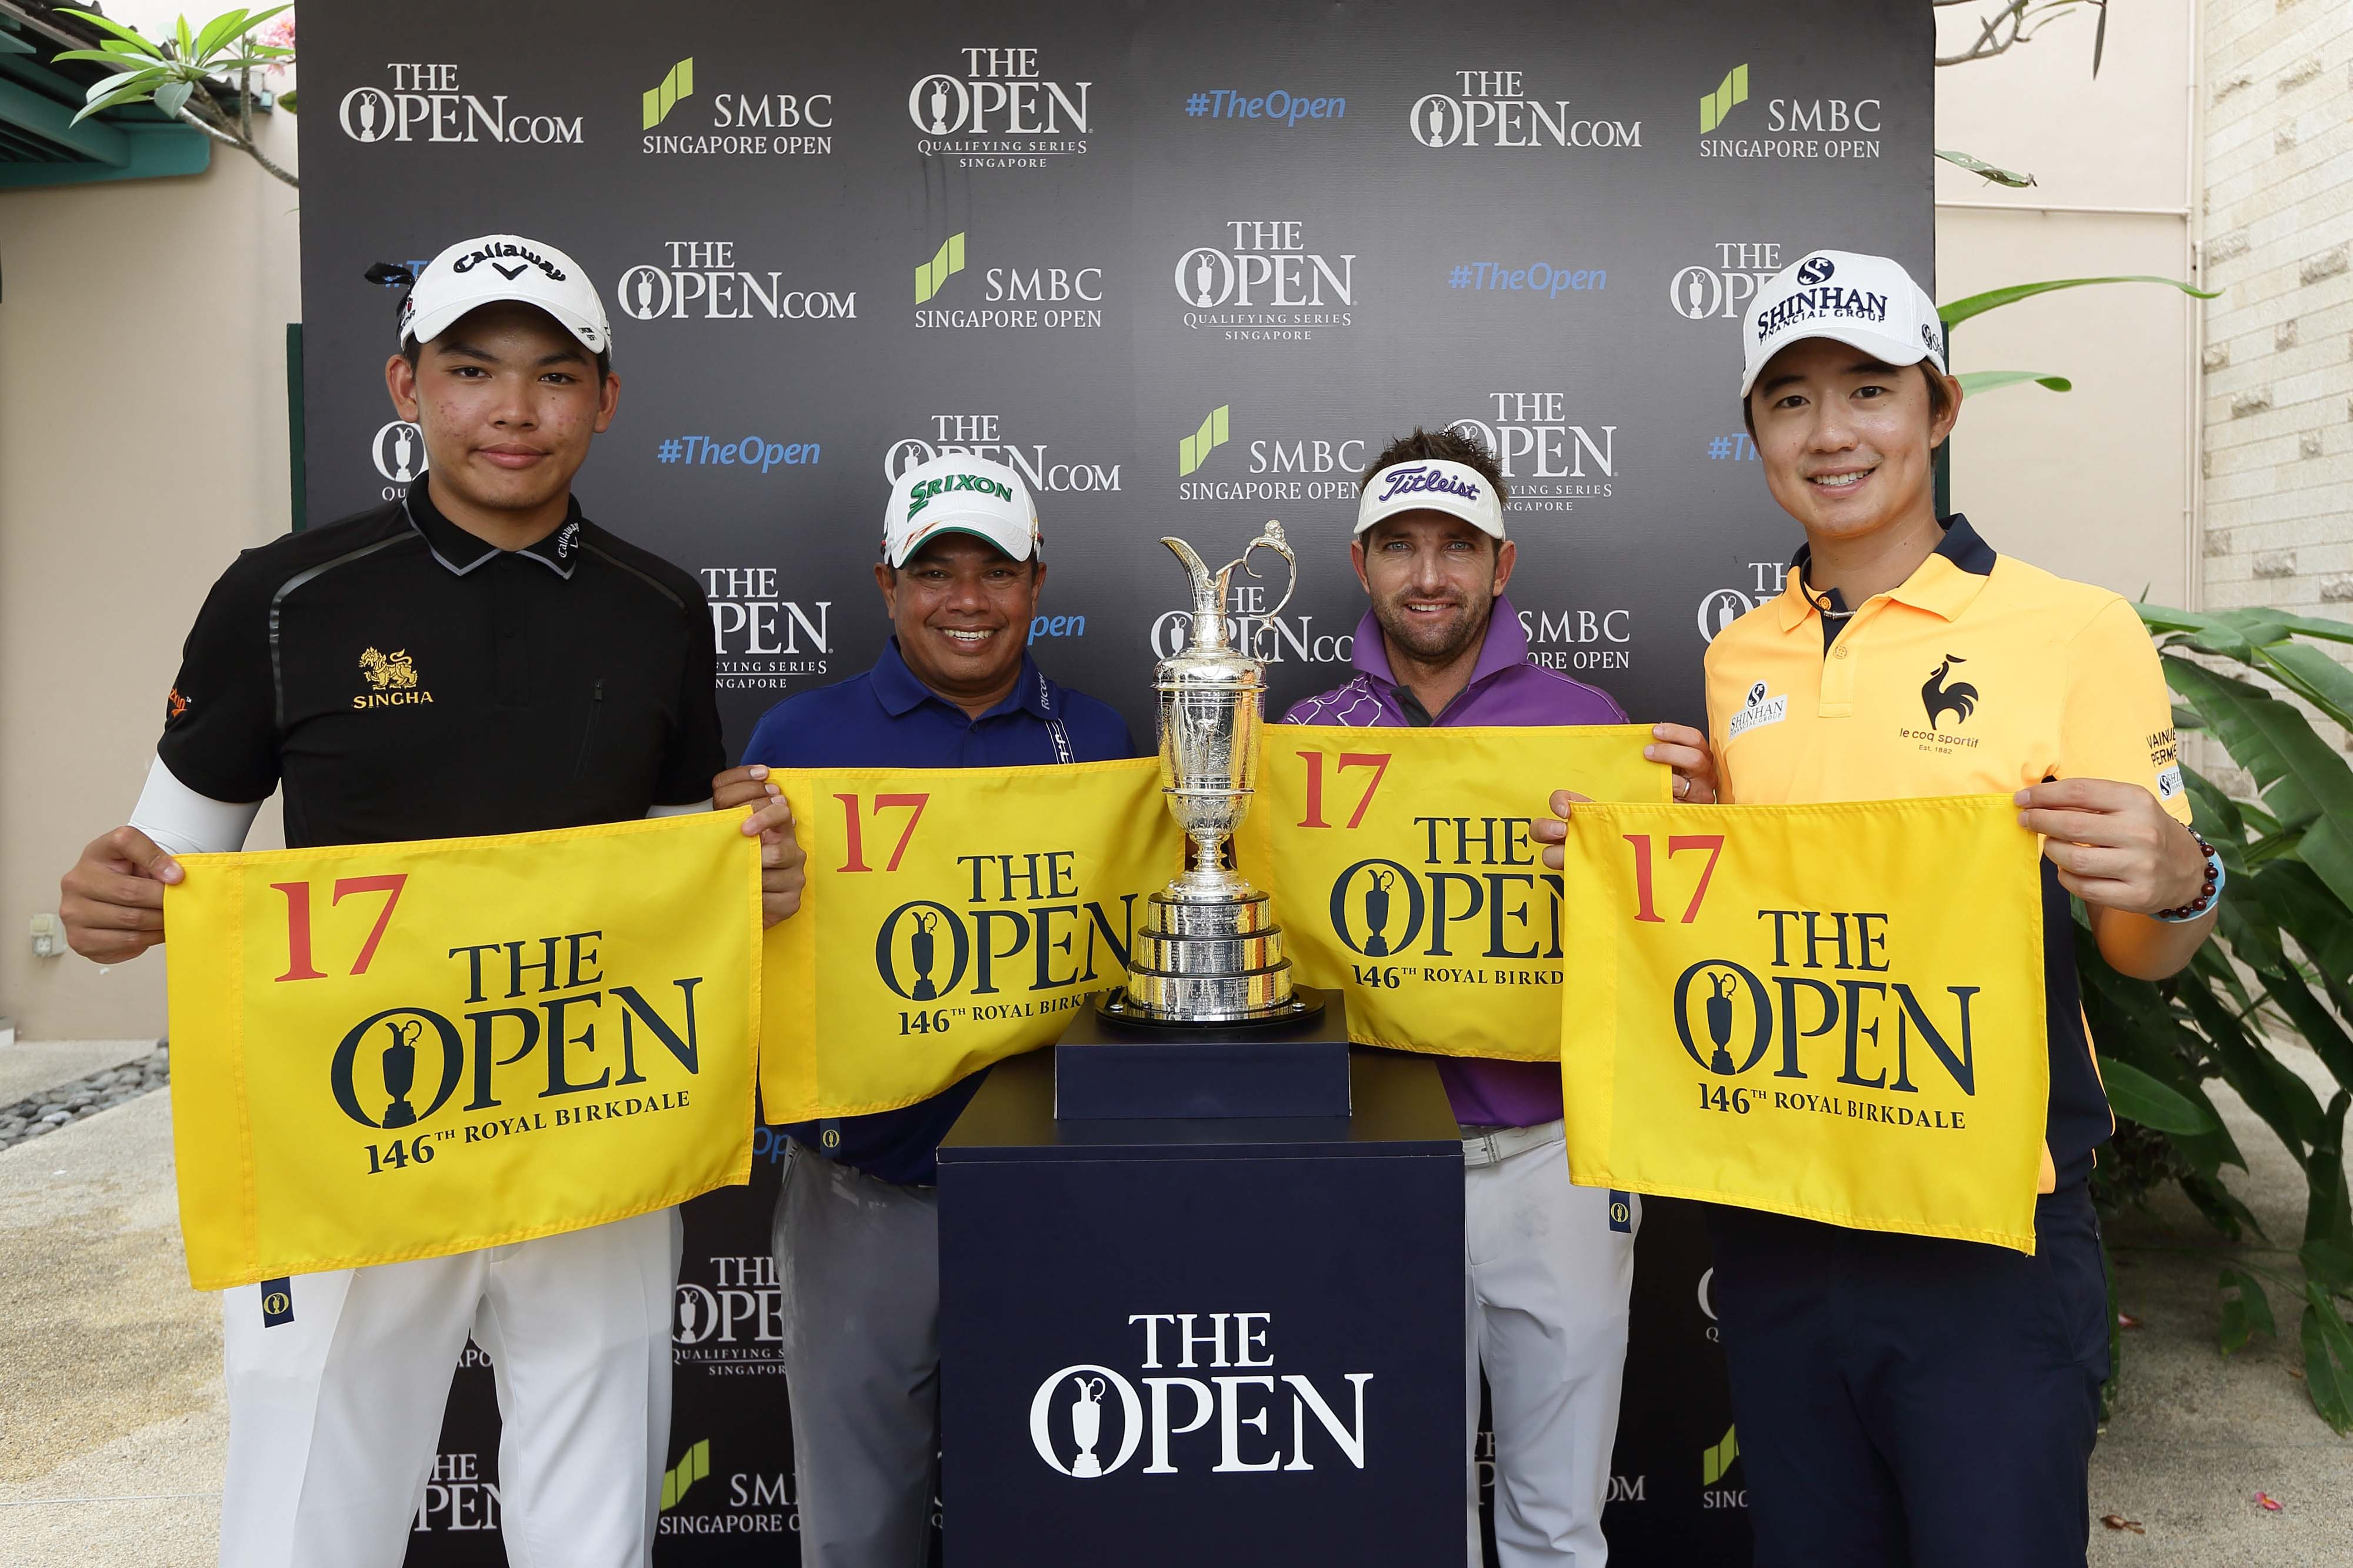 Qualifiers for The Open